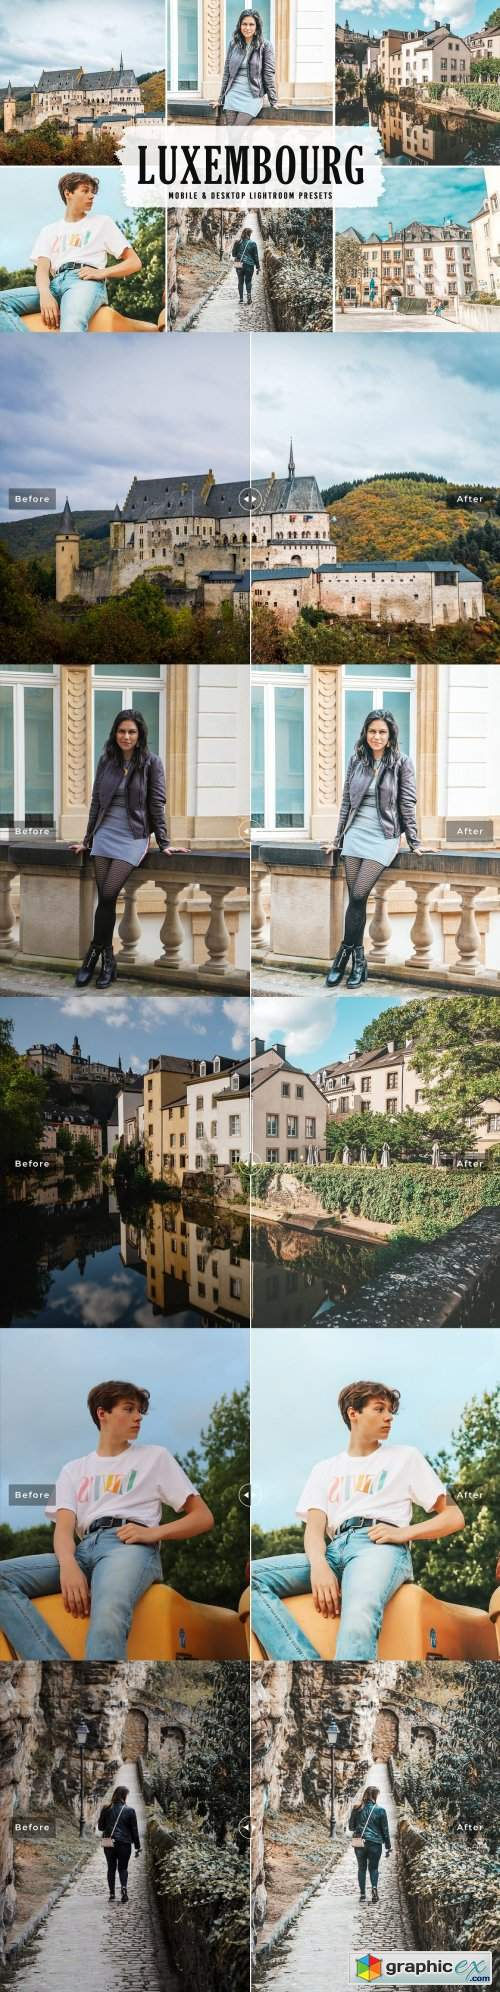 Luxembourg Pro Lightroom Presets